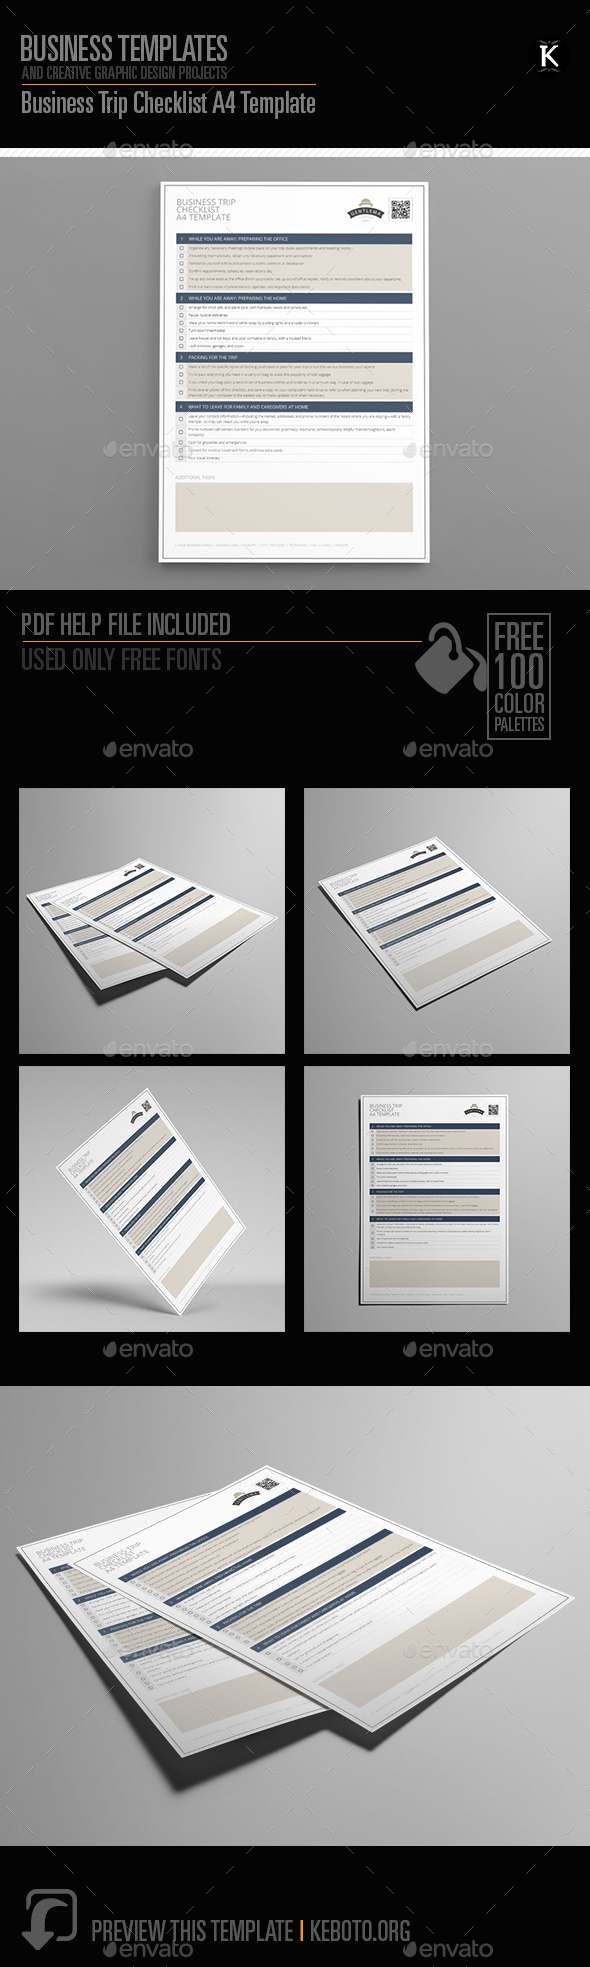 Business Trip Checklist A4 Template - Miscellaneous Print Templates